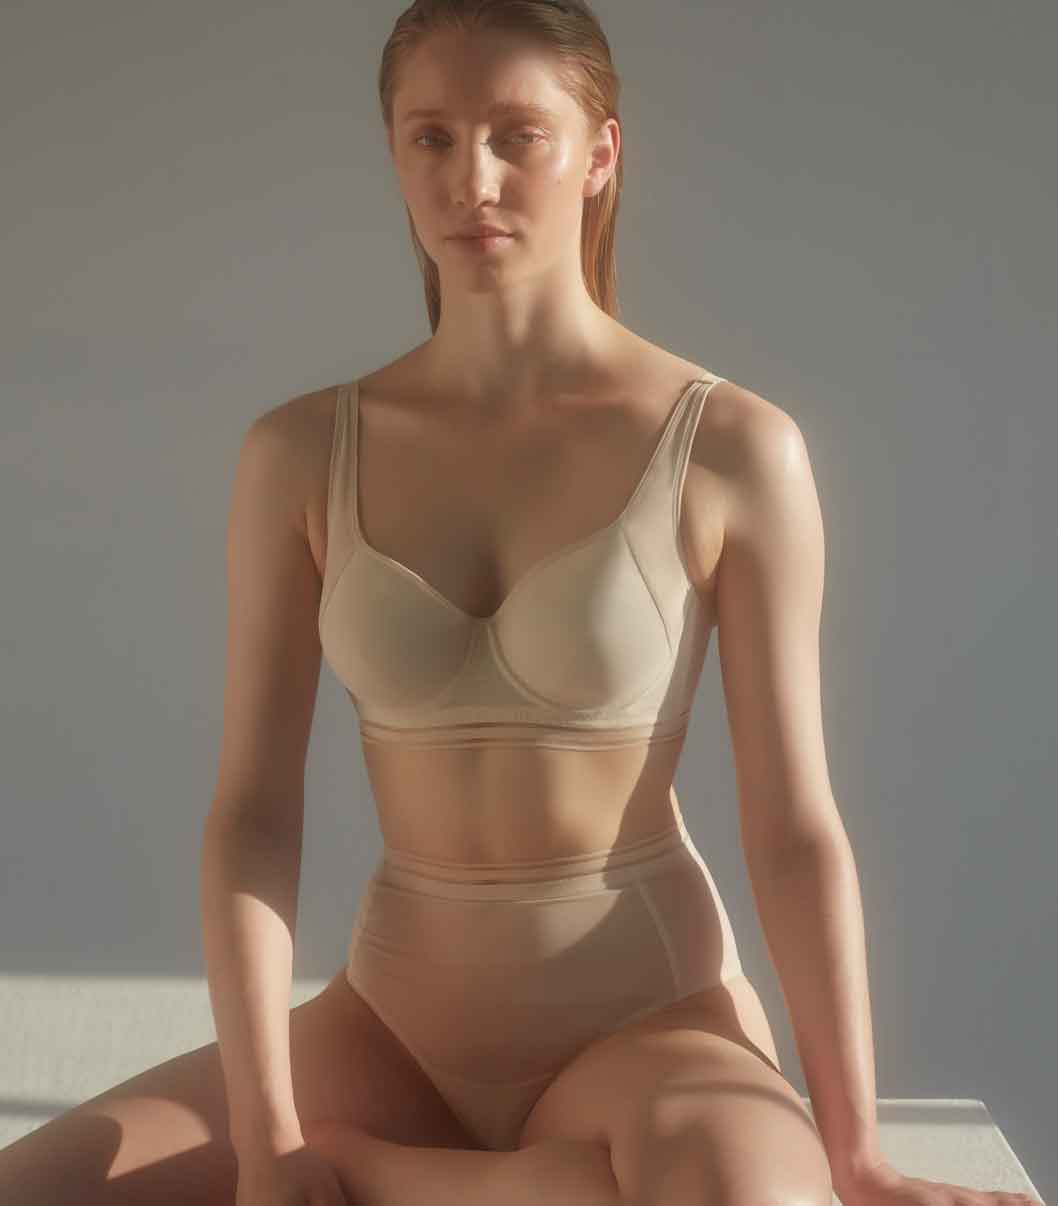 OPAAK ETHICAL AND SUSTAINABLE UNDERWEAR GERMAN LINGERIE BRAND good fashion guide ECOLOOKBOOK